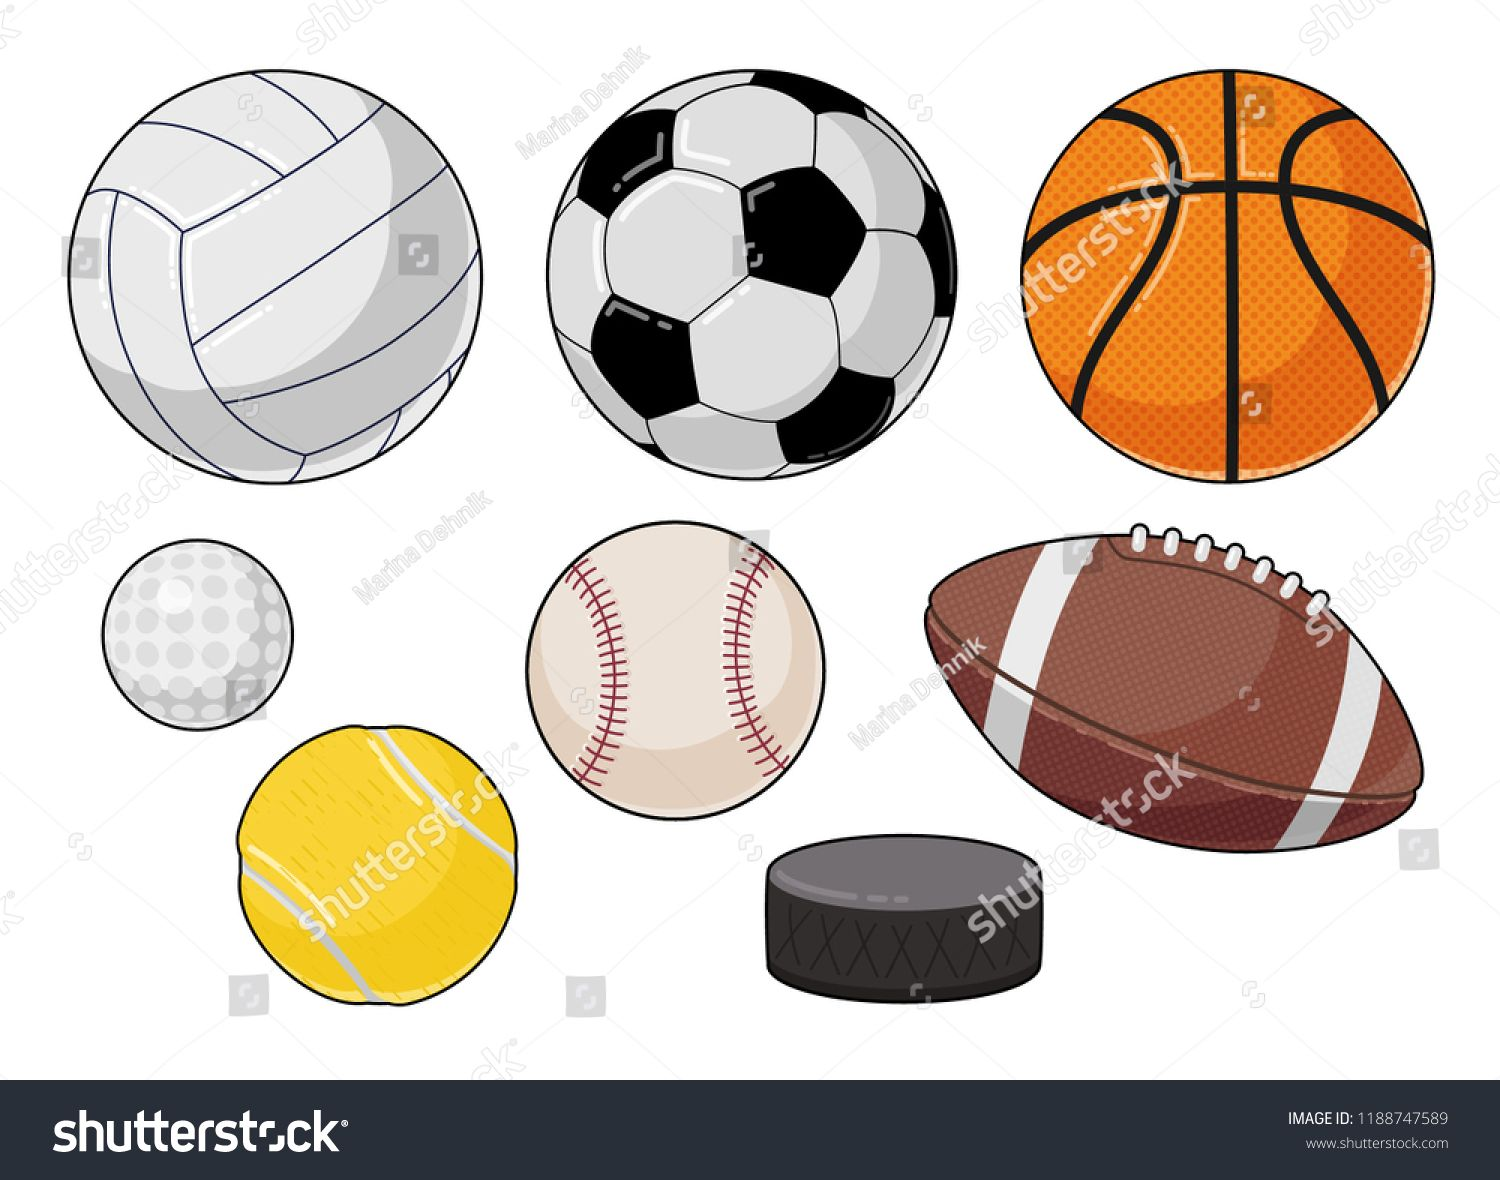 Vector Cartoon Sports Balls Set Royalty Free Image Vector In 2020 Sports Balls Sports Vector